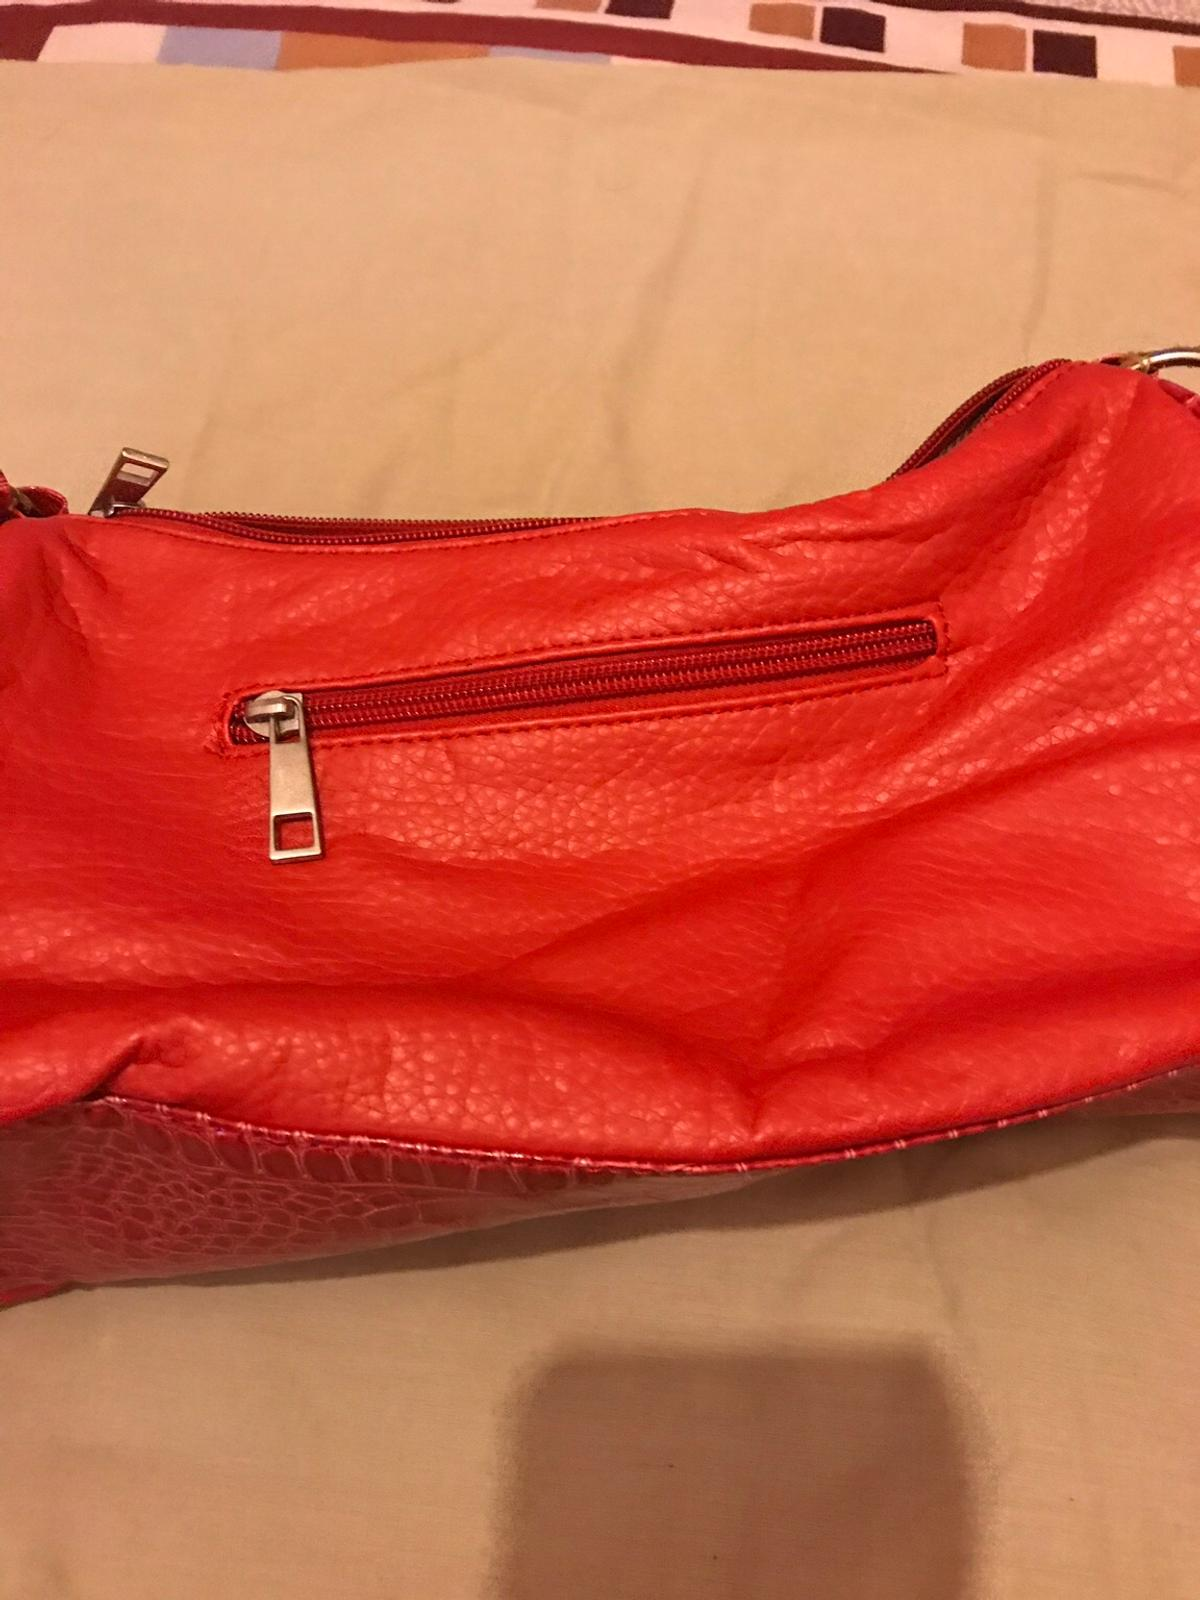 Soft leather studded red stylish shoulder bag has a 2 small pockets on the side and beautiful bow style bag brand new in excellent condition